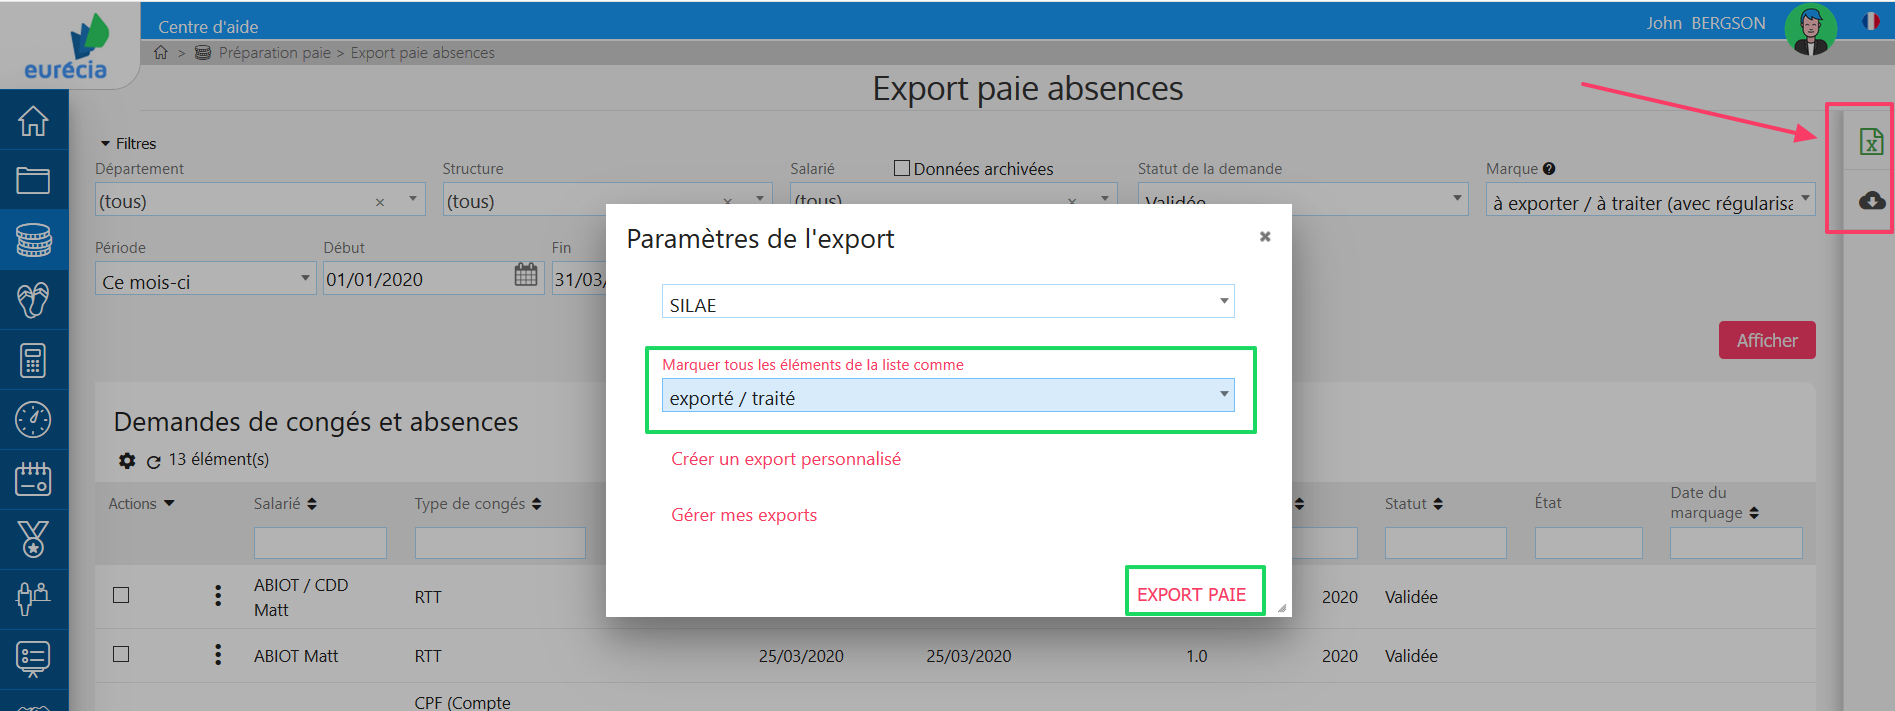 export_paie.png